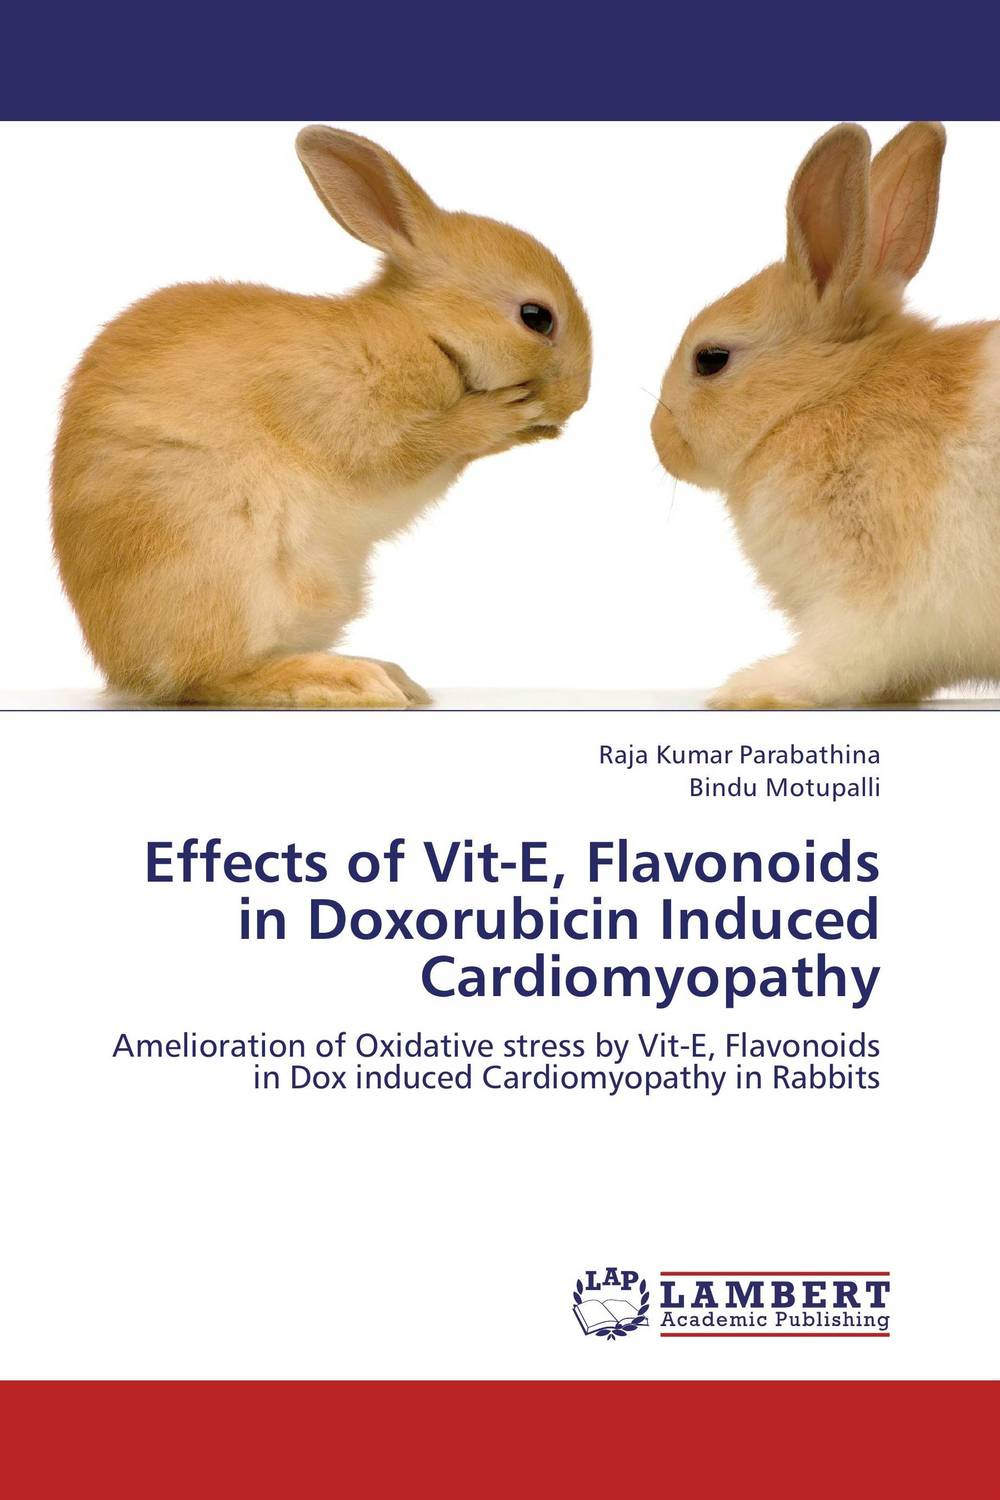 Effects of Vit-E, Flavonoids in Doxorubicin Induced Cardiomyopathy m n roy the philosopher